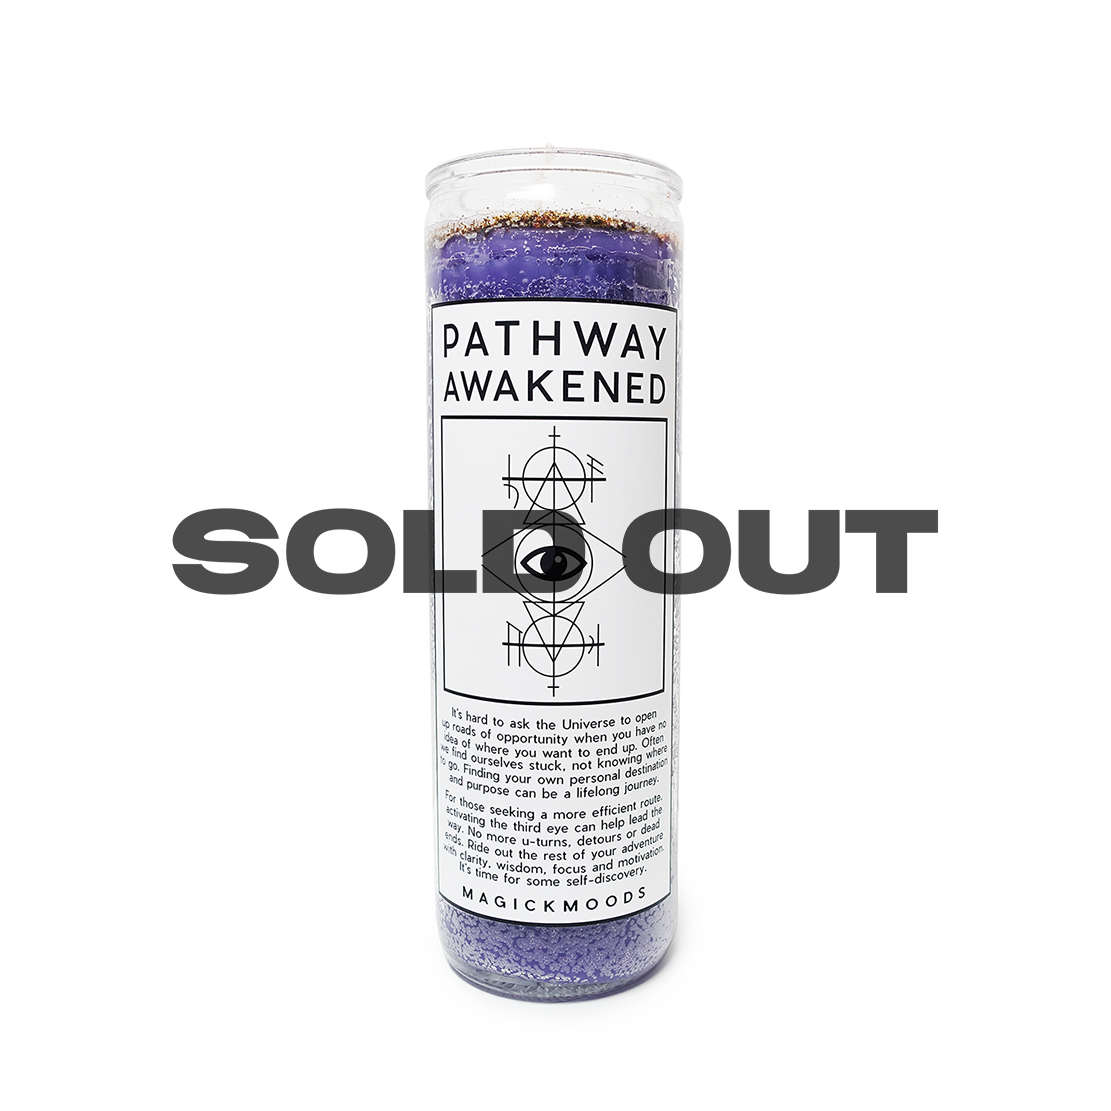 Pathway Awakened 7-Day Meditation Candle - PREORDER - Ships by 8/14